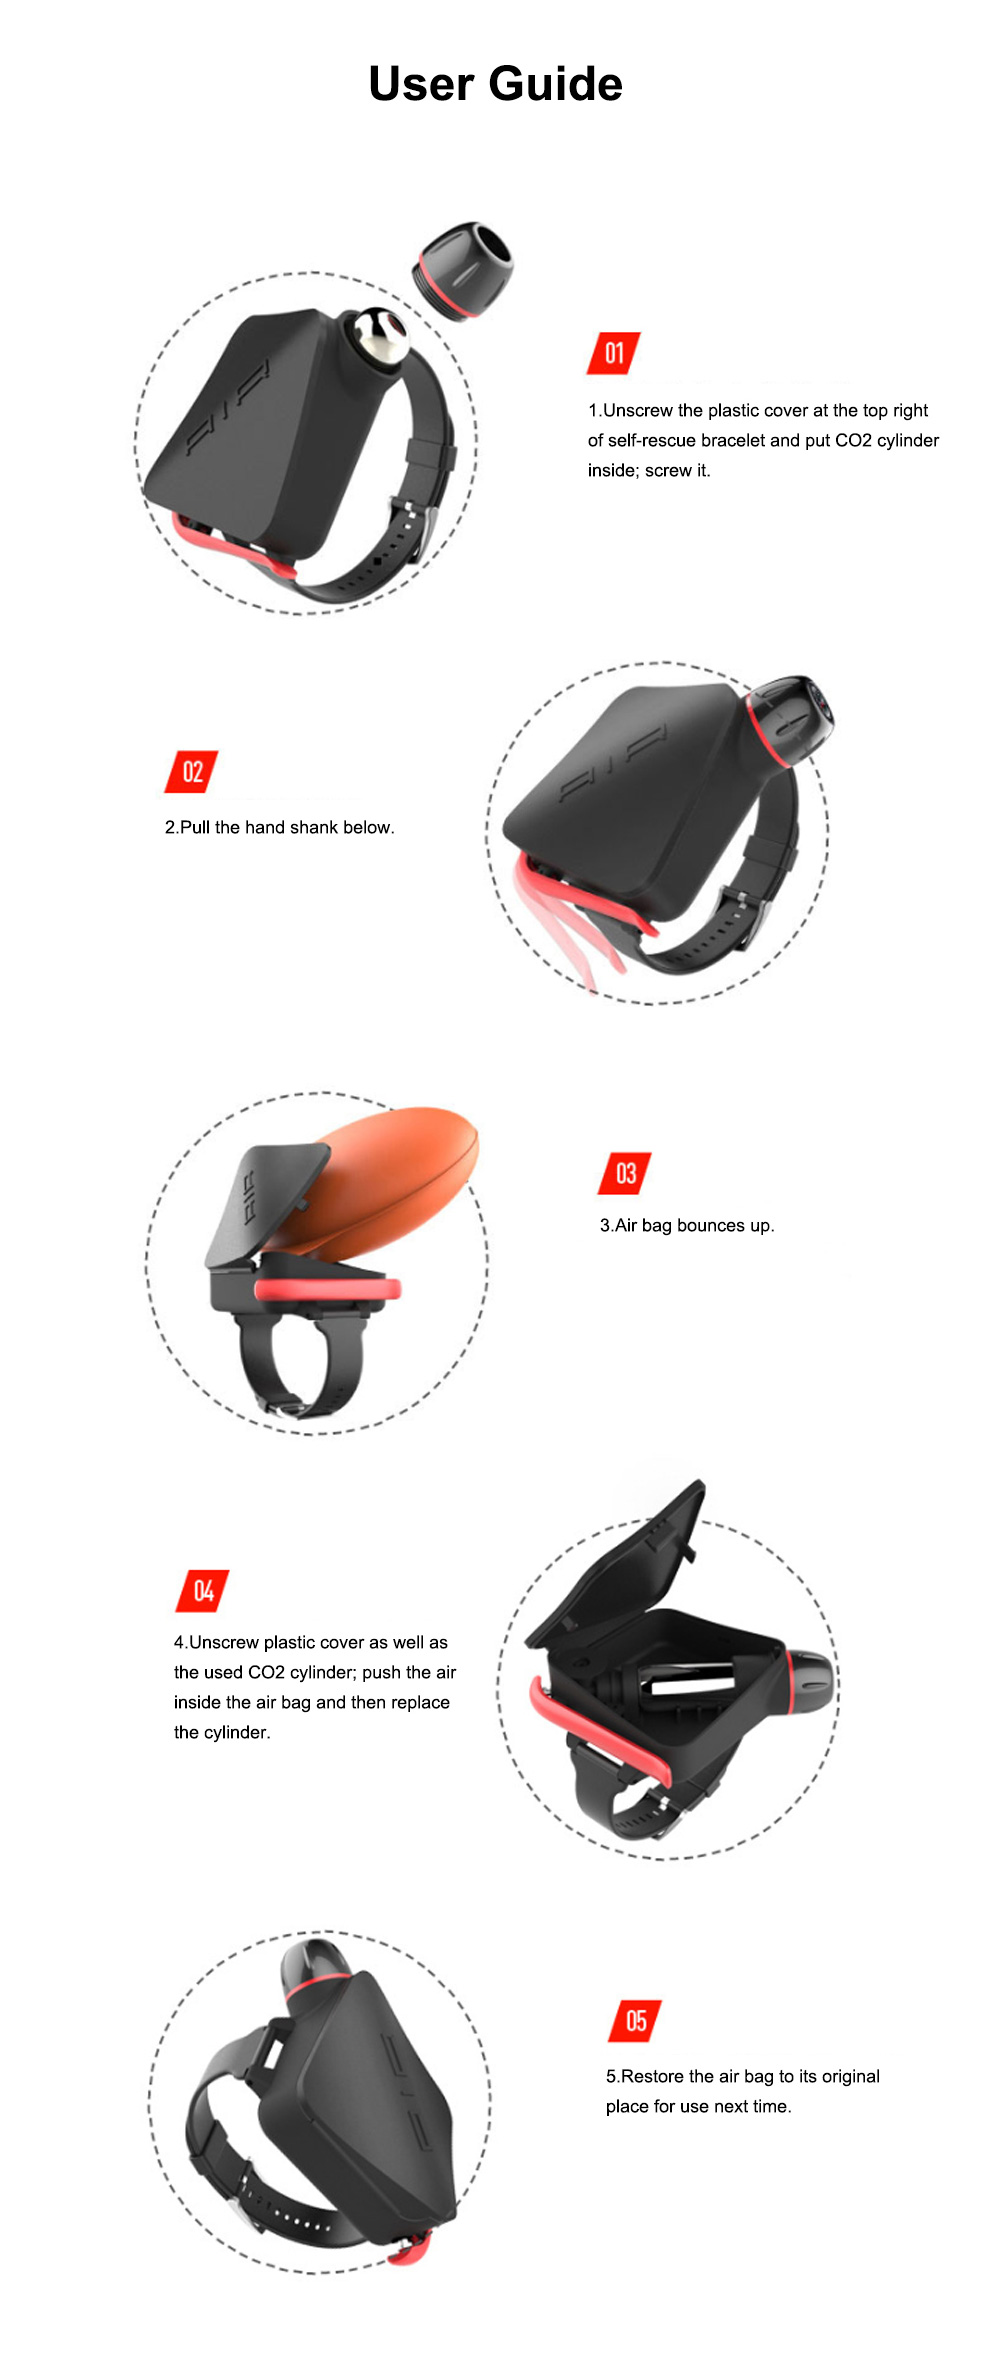 Self-rescue Bracelet with TPU Composite Air Bag for Underwater Activities Surfing Swimming Drowning Prevention Wristband Self-aid Underwater Bracelet 8